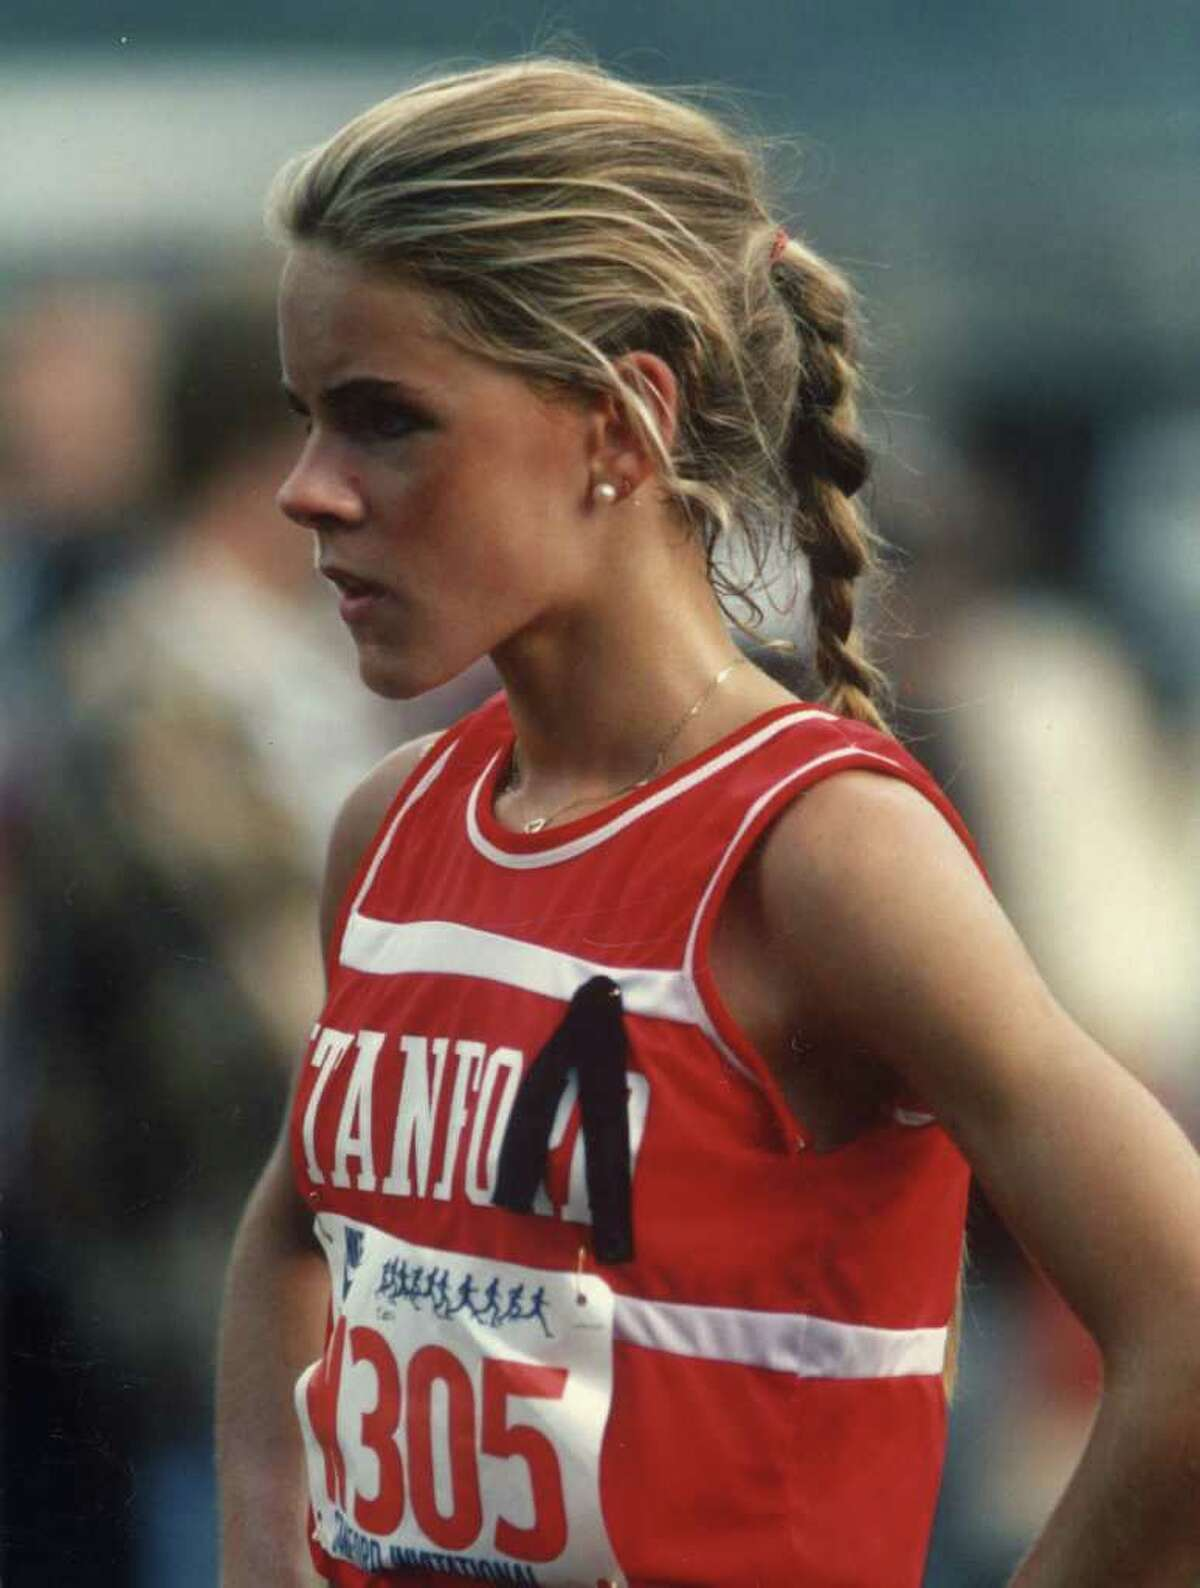 Greenwich High School graduate Ceci Hopp St. Geme, shown here at Stanford University, was one of six new members selected to be inducted into the Fairfield County Sports Hall of Fame. St. Geme, who broke four FCIAC and two state records during her cross country and track and field career at Greenwich High, gained national prominence when she won the Kinney (now Foot Locker) National Cross Country Championship in 1980. The standout runner, who won the NCAA title in the 3,000-meter run as a junior at Stanford University, will be honored during an induction ceremony at the commission's seventh annual sports awards dinner on Oct. 17 at the Hyatt Regency Greenwich.